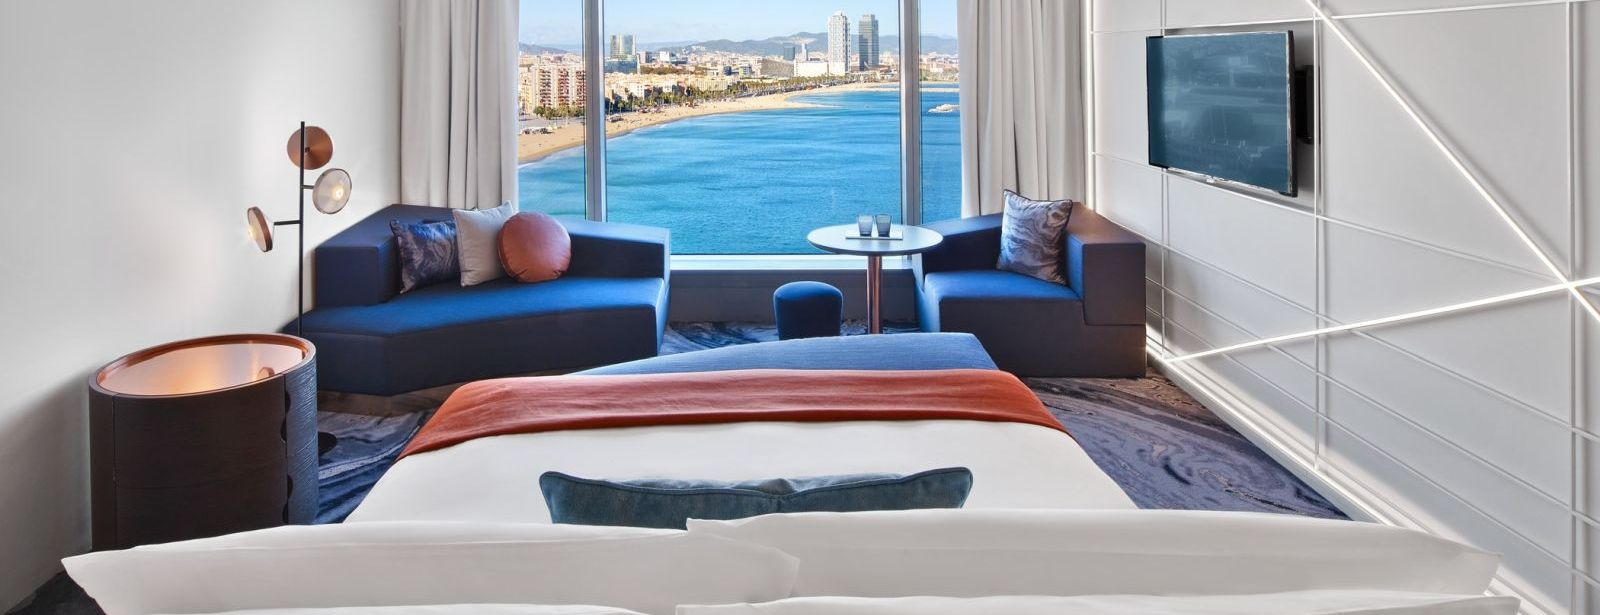 Fabulous Sky Room at W Barcelona